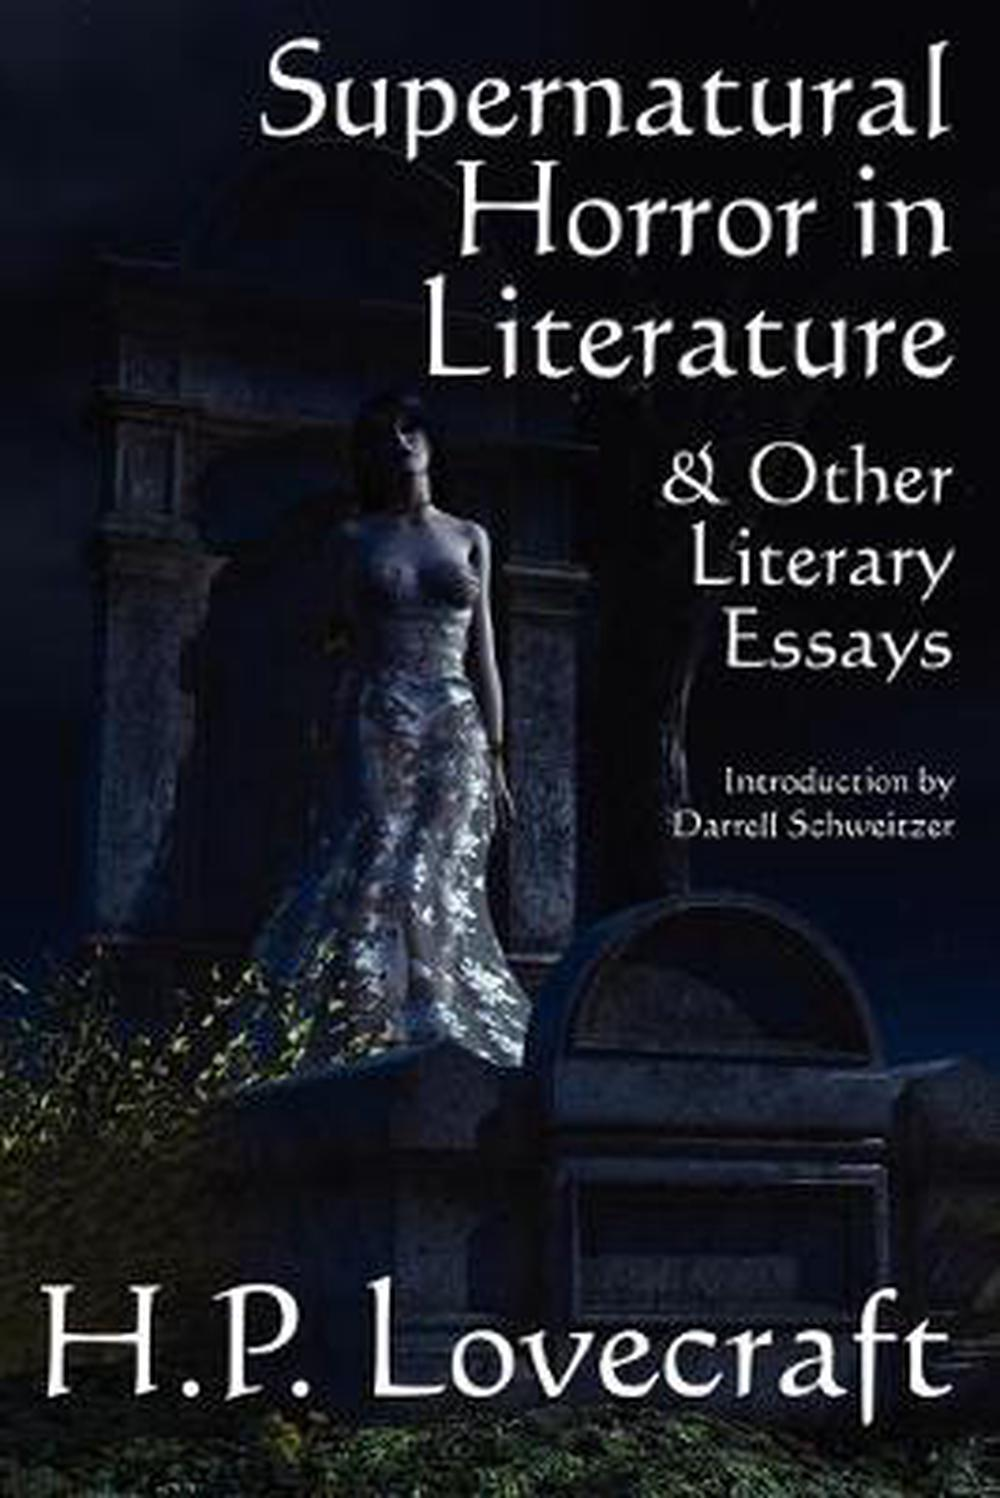 supernatural horror in literature other literary essays by h p  image is loading supernatural horror in literature amp other literary essays